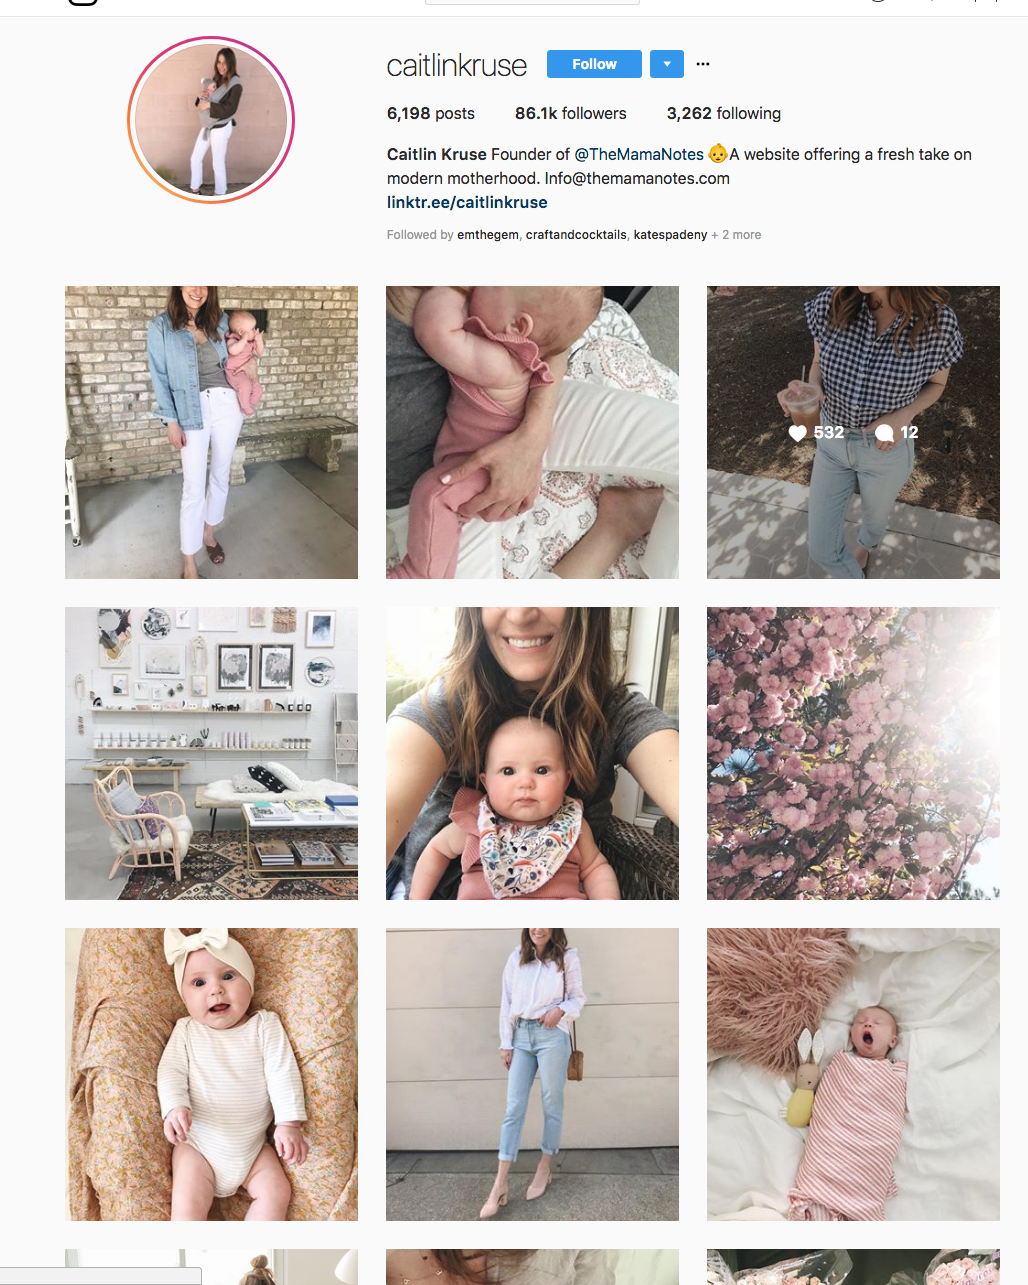 Although this lady posts all sorts of different things, they all have a consistent color scheme and light/dark balance.